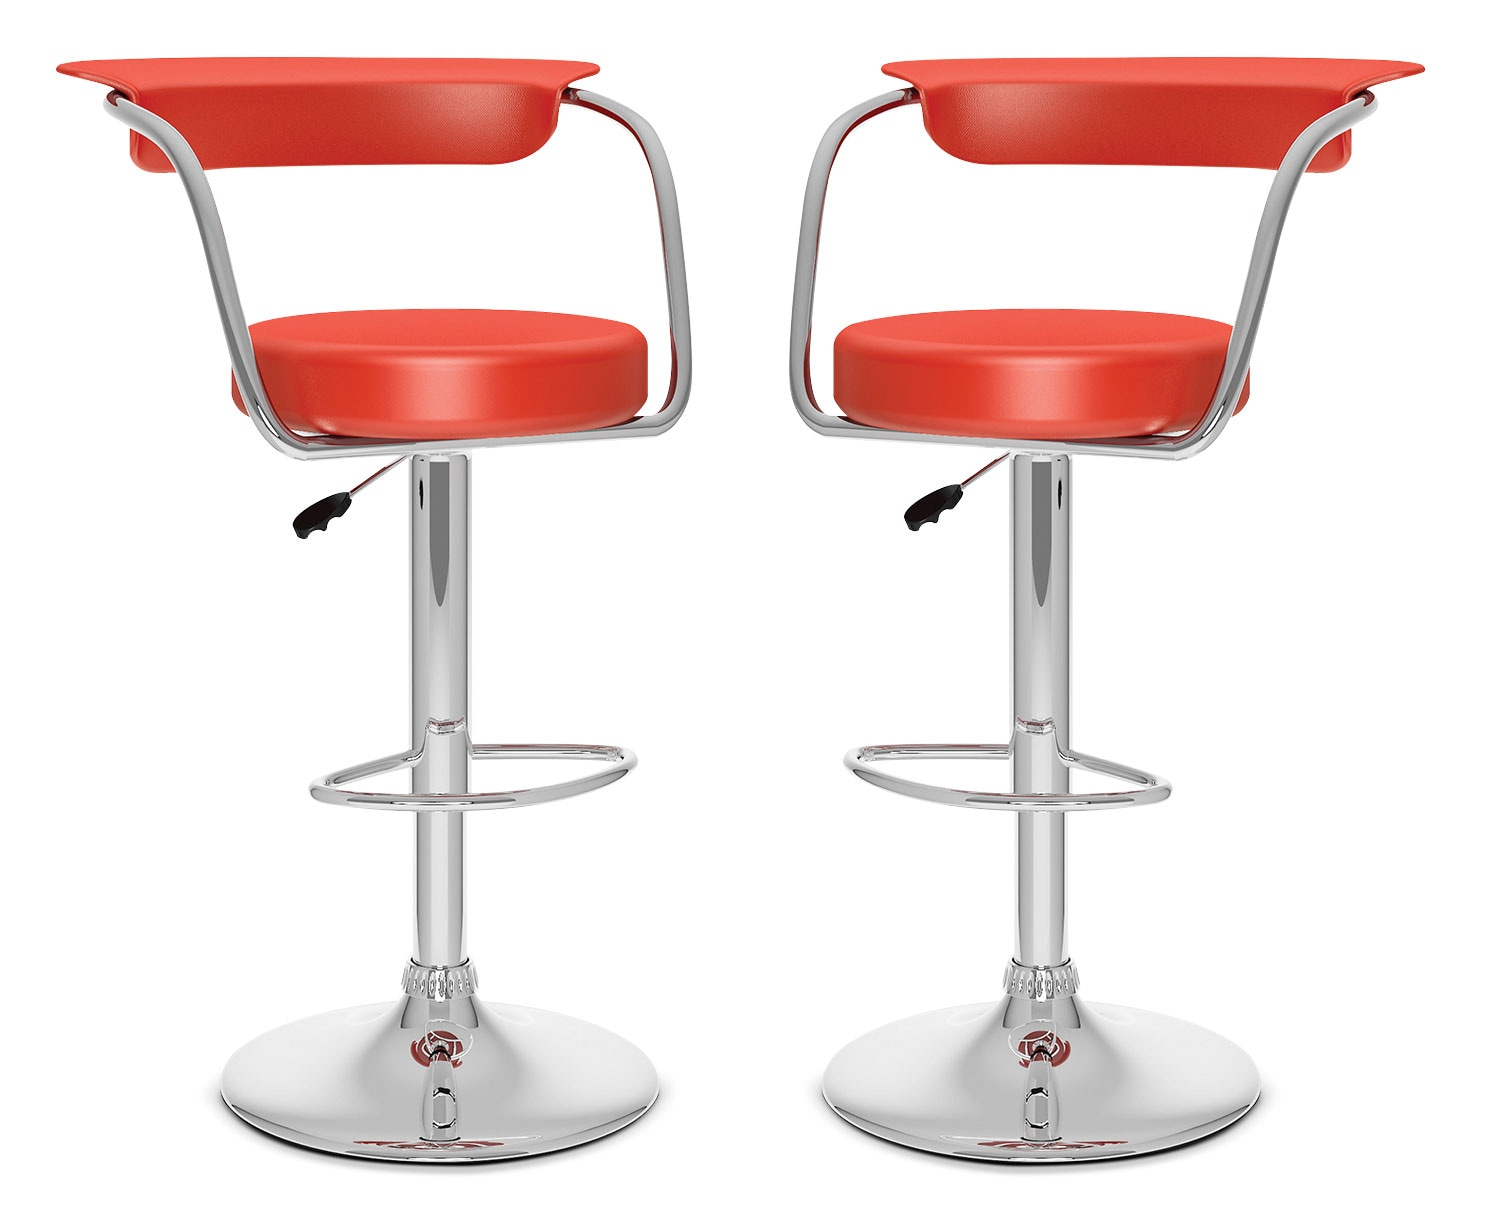 CorLiving Open-Back Adjustable Bar Stool, Set of 2 – Red